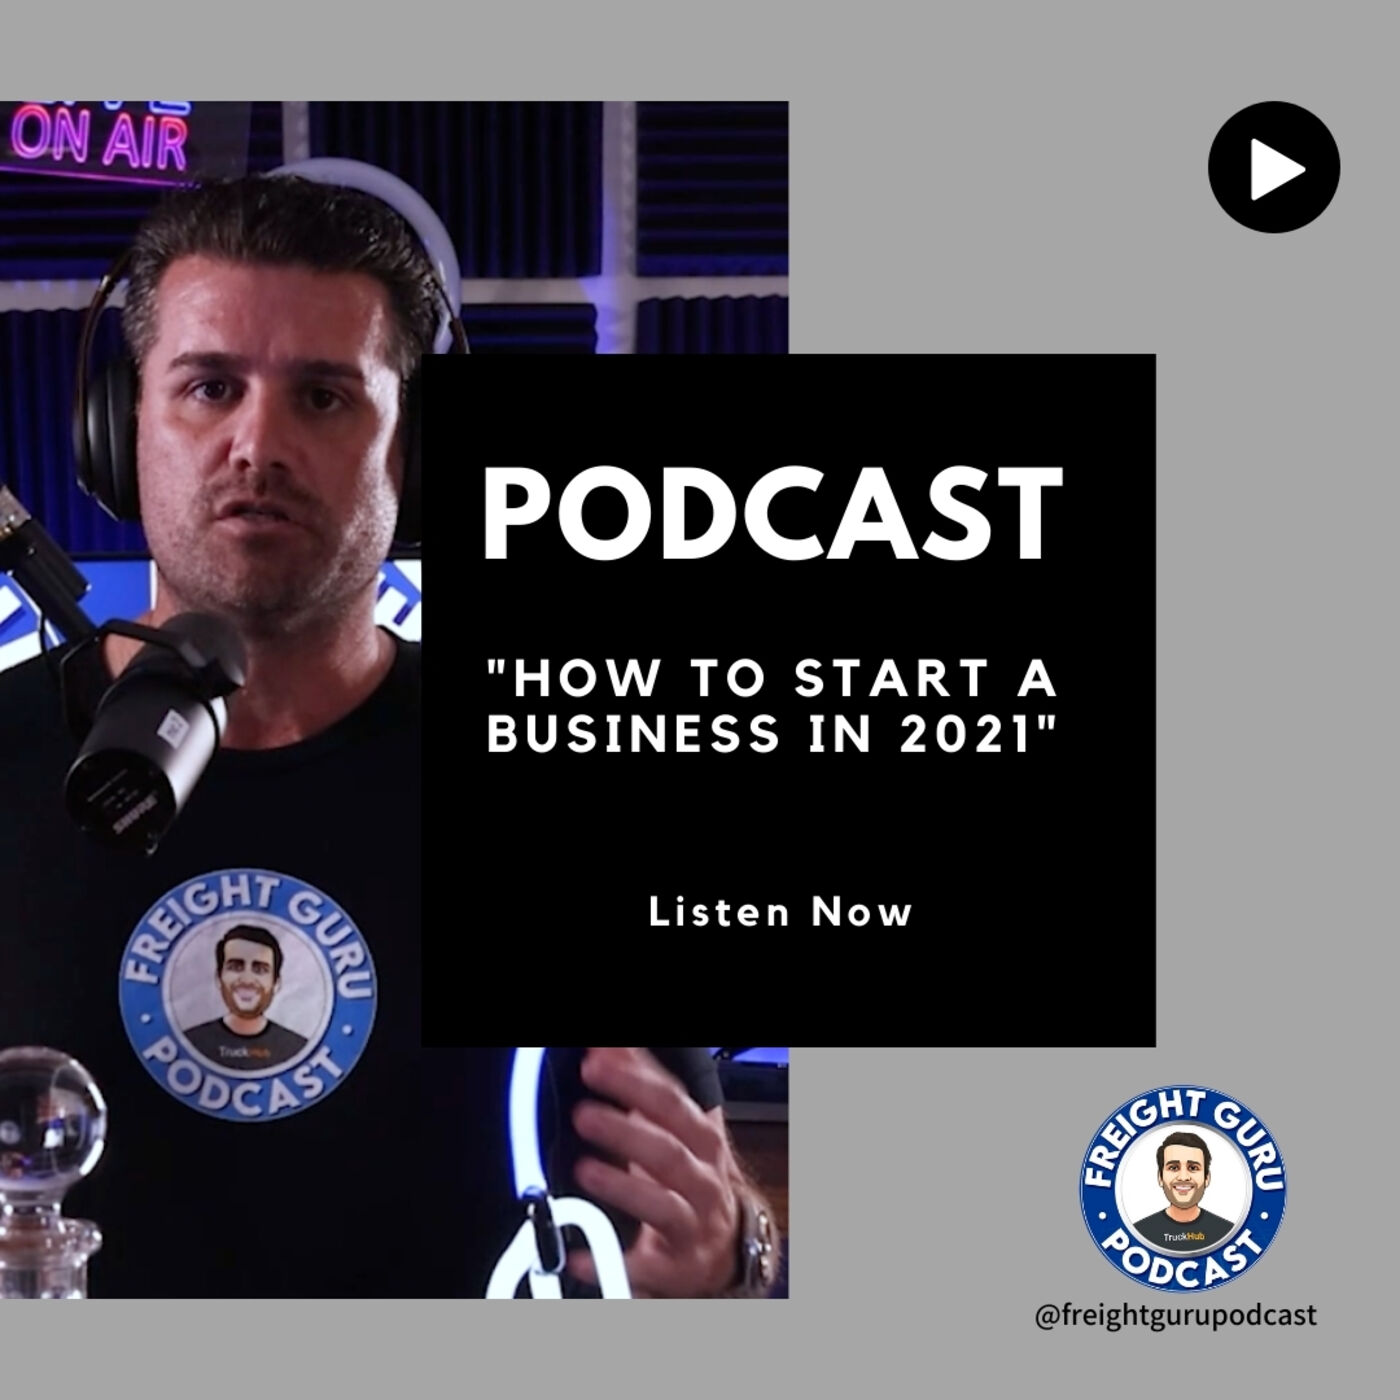 How To Start A Business in 2021 - Freight Guru Podcast Ep. 20